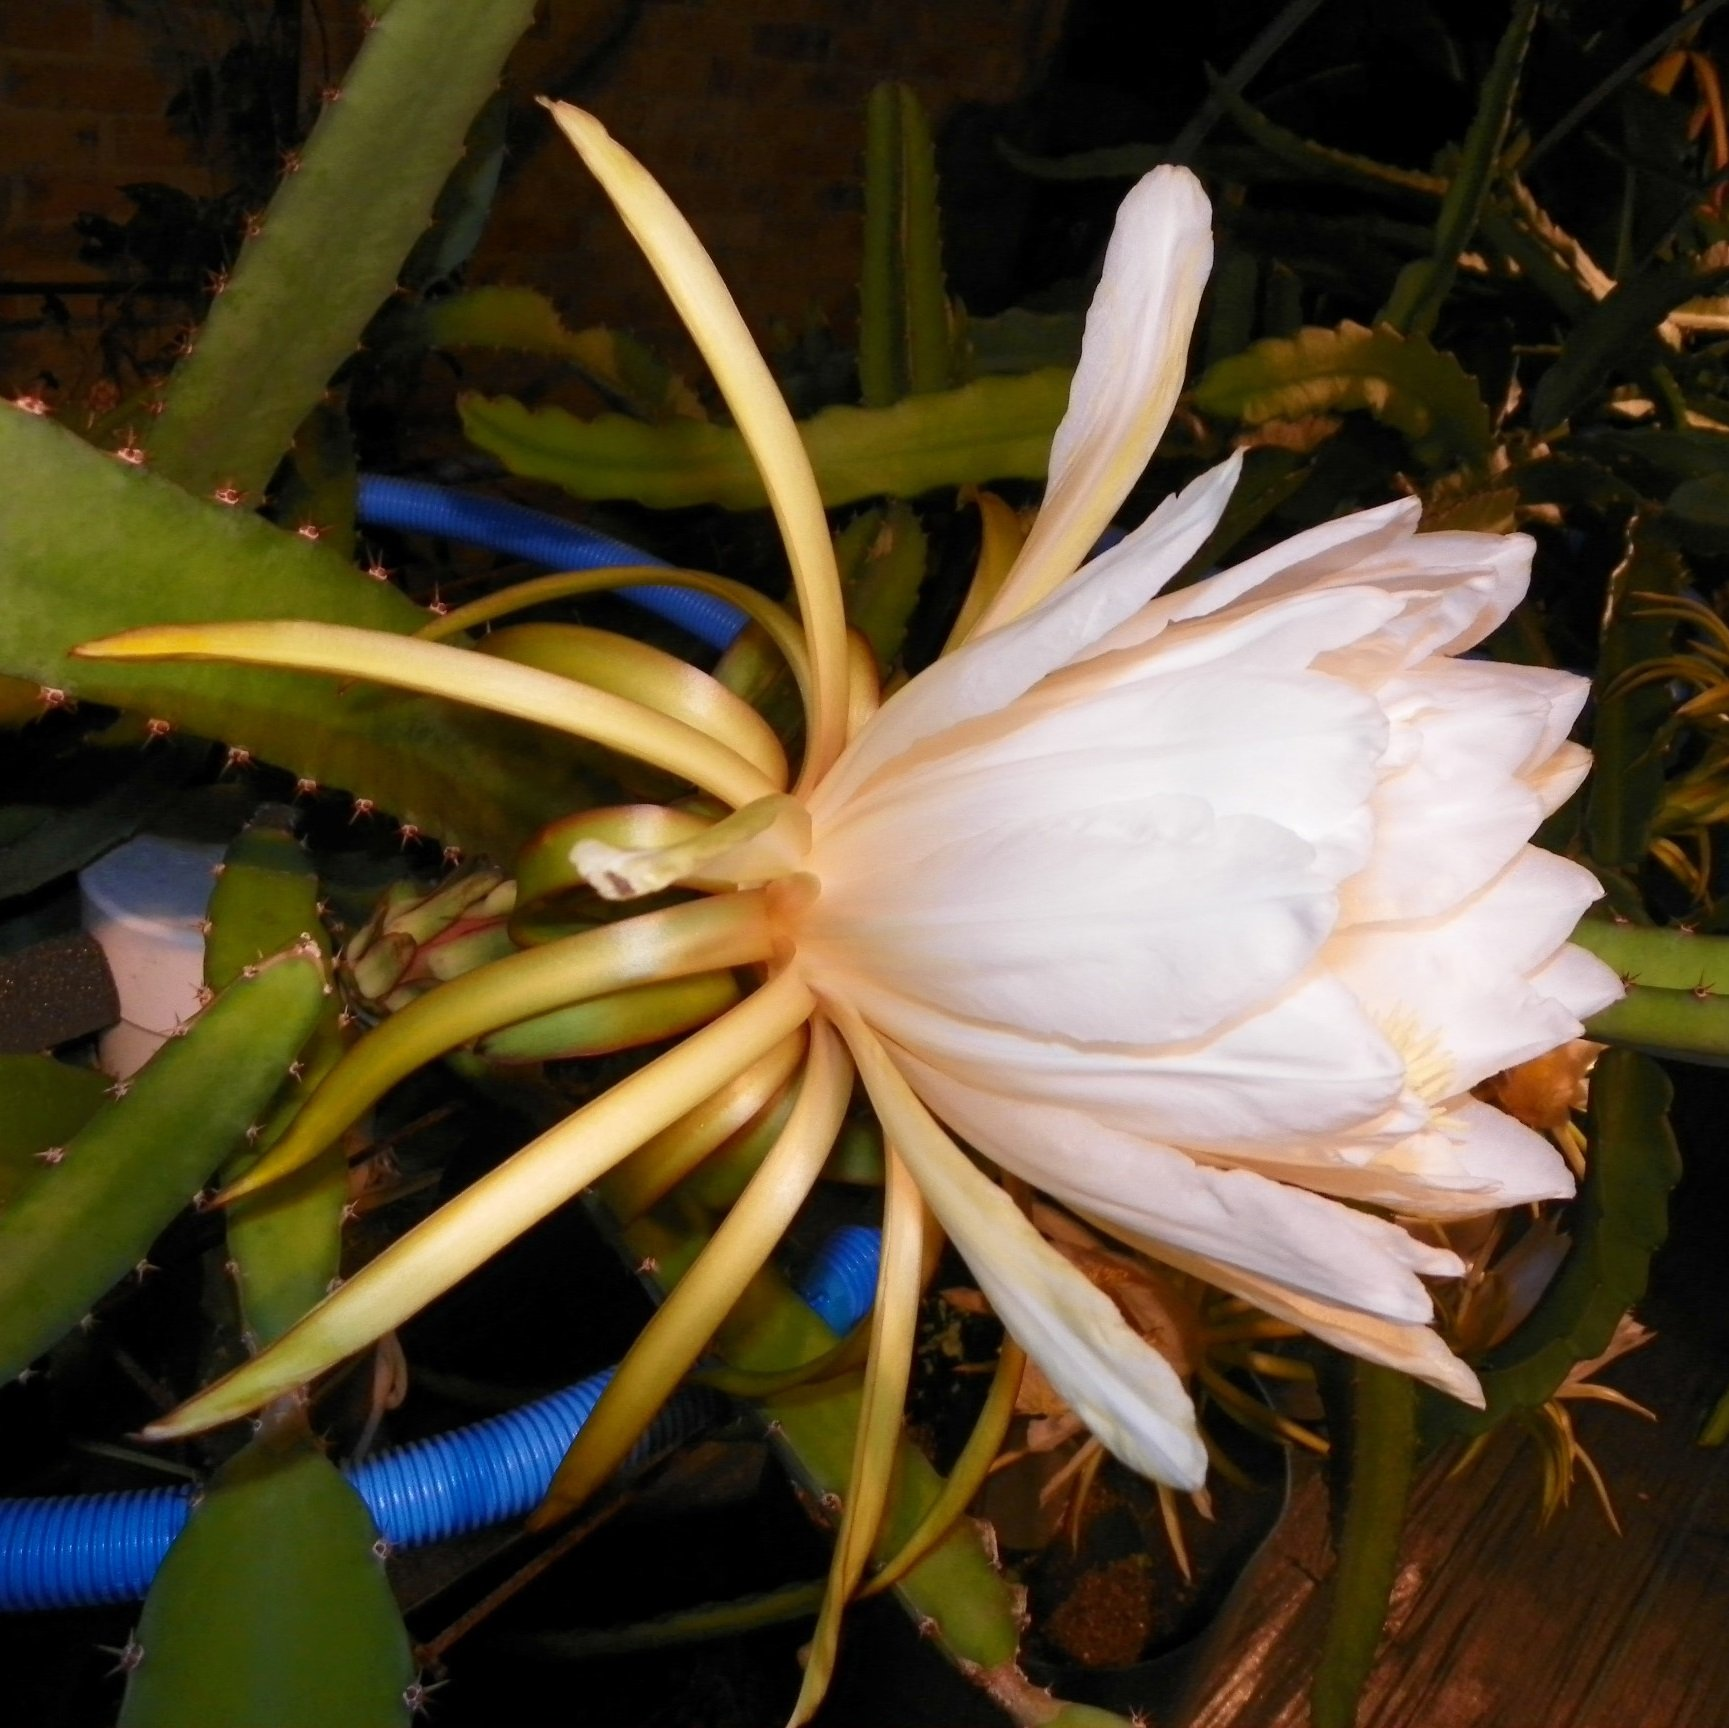 Dragon Fruit variety Cebra flower